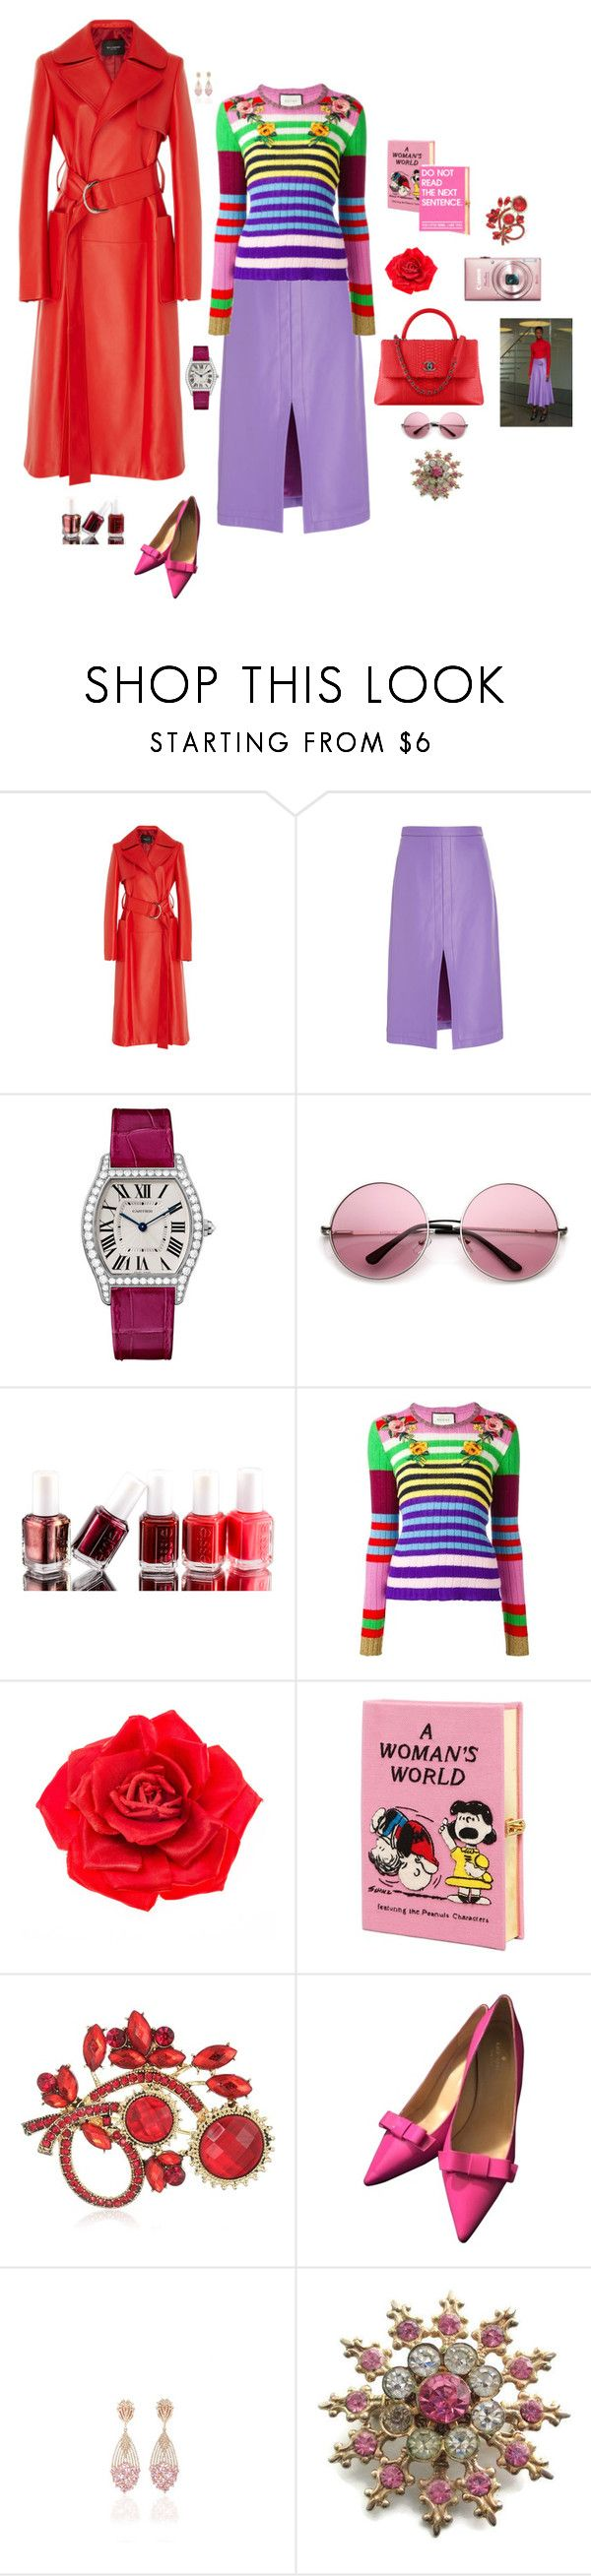 """Wear purple"" by mbarbosa ❤ liked on Polyvore featuring Derek Lam, Cartier, Essie, Gucci, Johnny Loves Rosie, Olympia Le-Tan, Chanel, Napier, Kate Spade and Hueb"